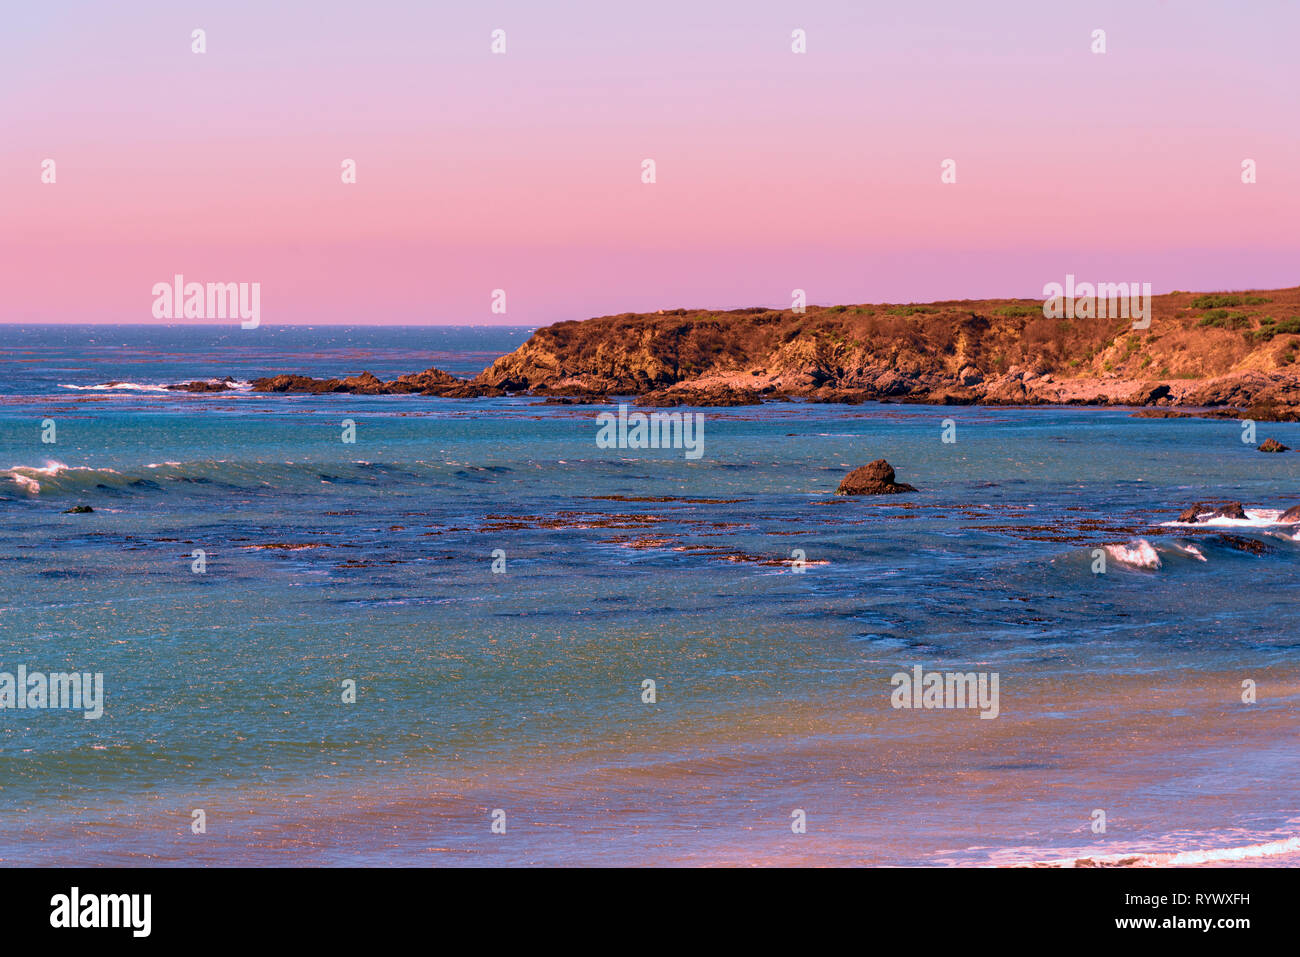 Blue Green Ocean With Small Breaking Waves Seaside Cliffs At Sunset Under Pale Orange Red Pink And Purple Sky Stock Photo Alamy